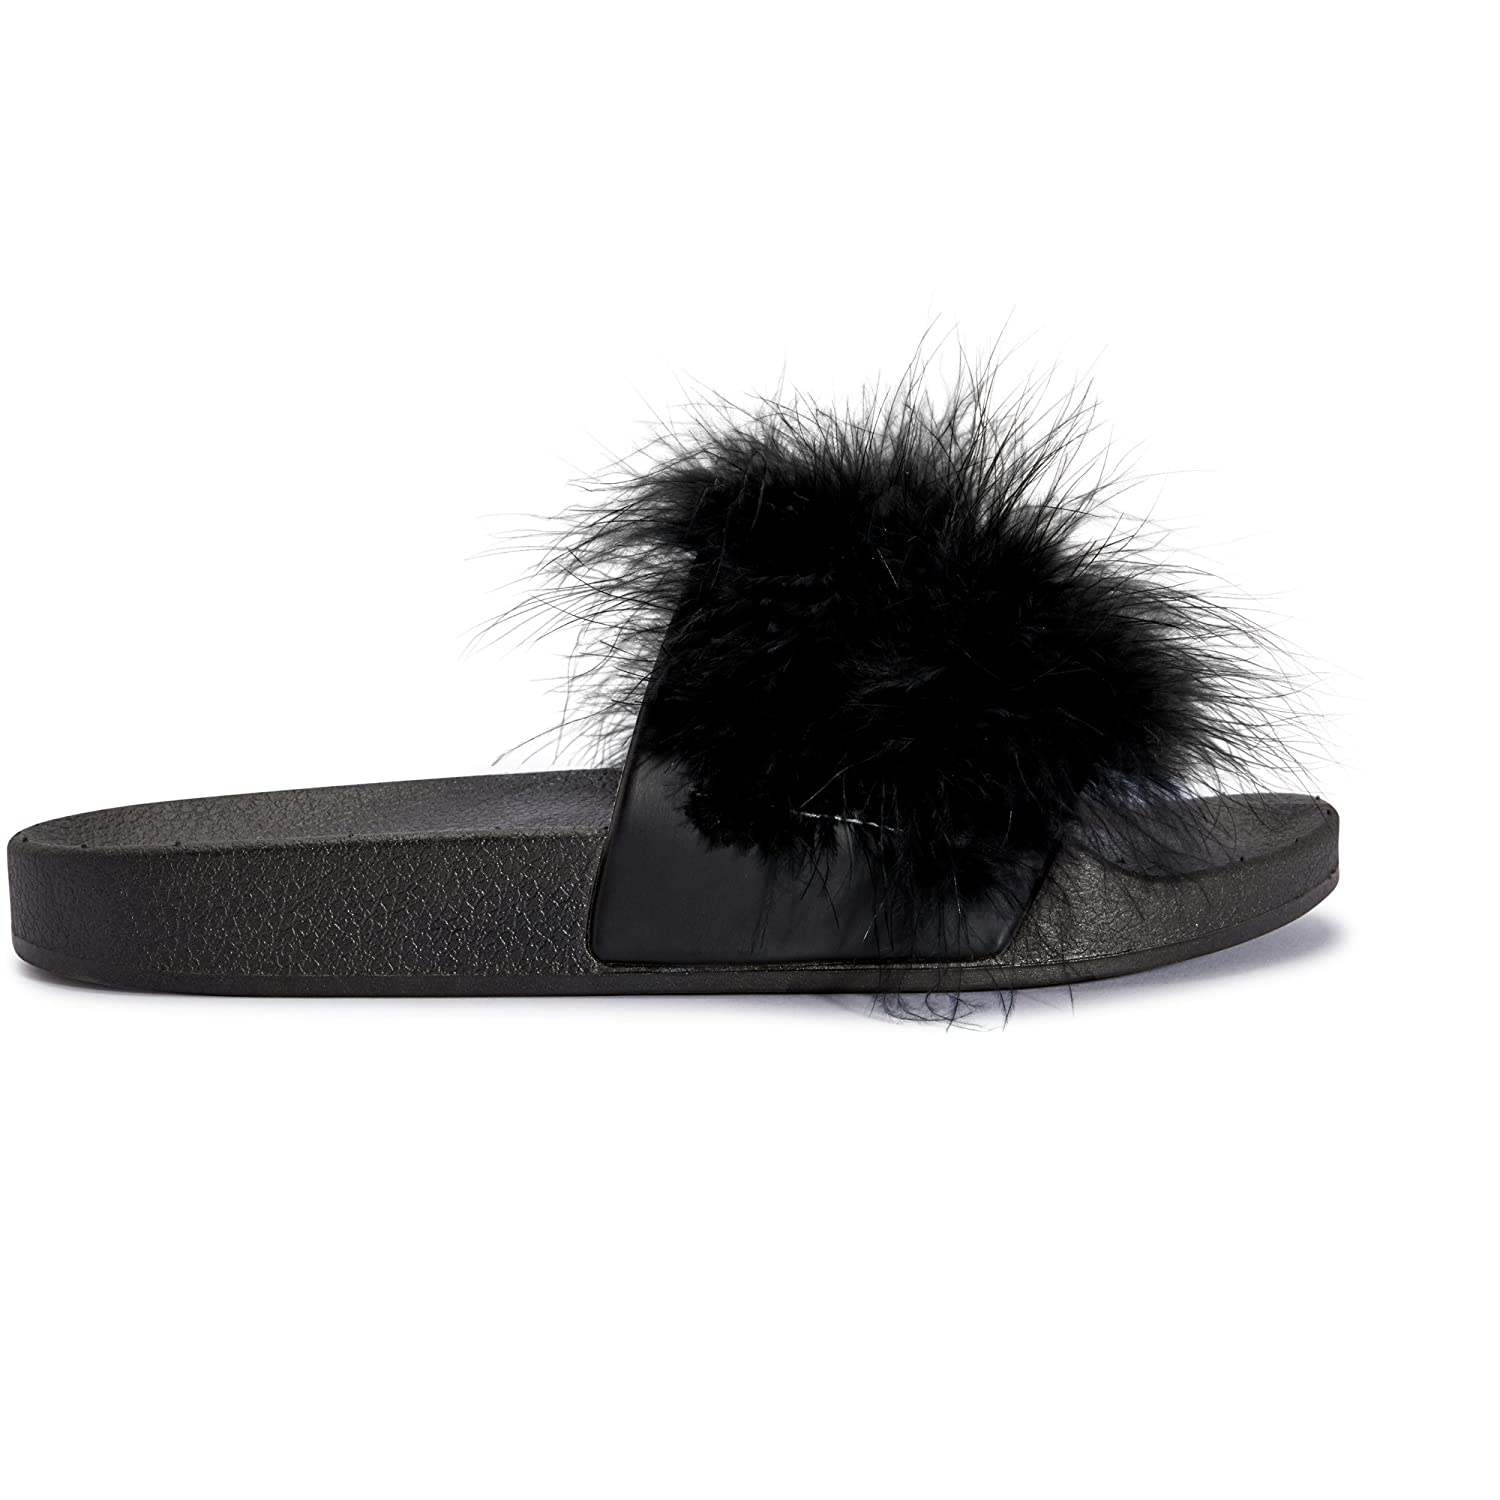 947743f50e4 Womens Ladies Faux Fur Feather Marabou Slip On Fluffy Mules Sliders Slippers   Amazon.co.uk  Shoes   Bags